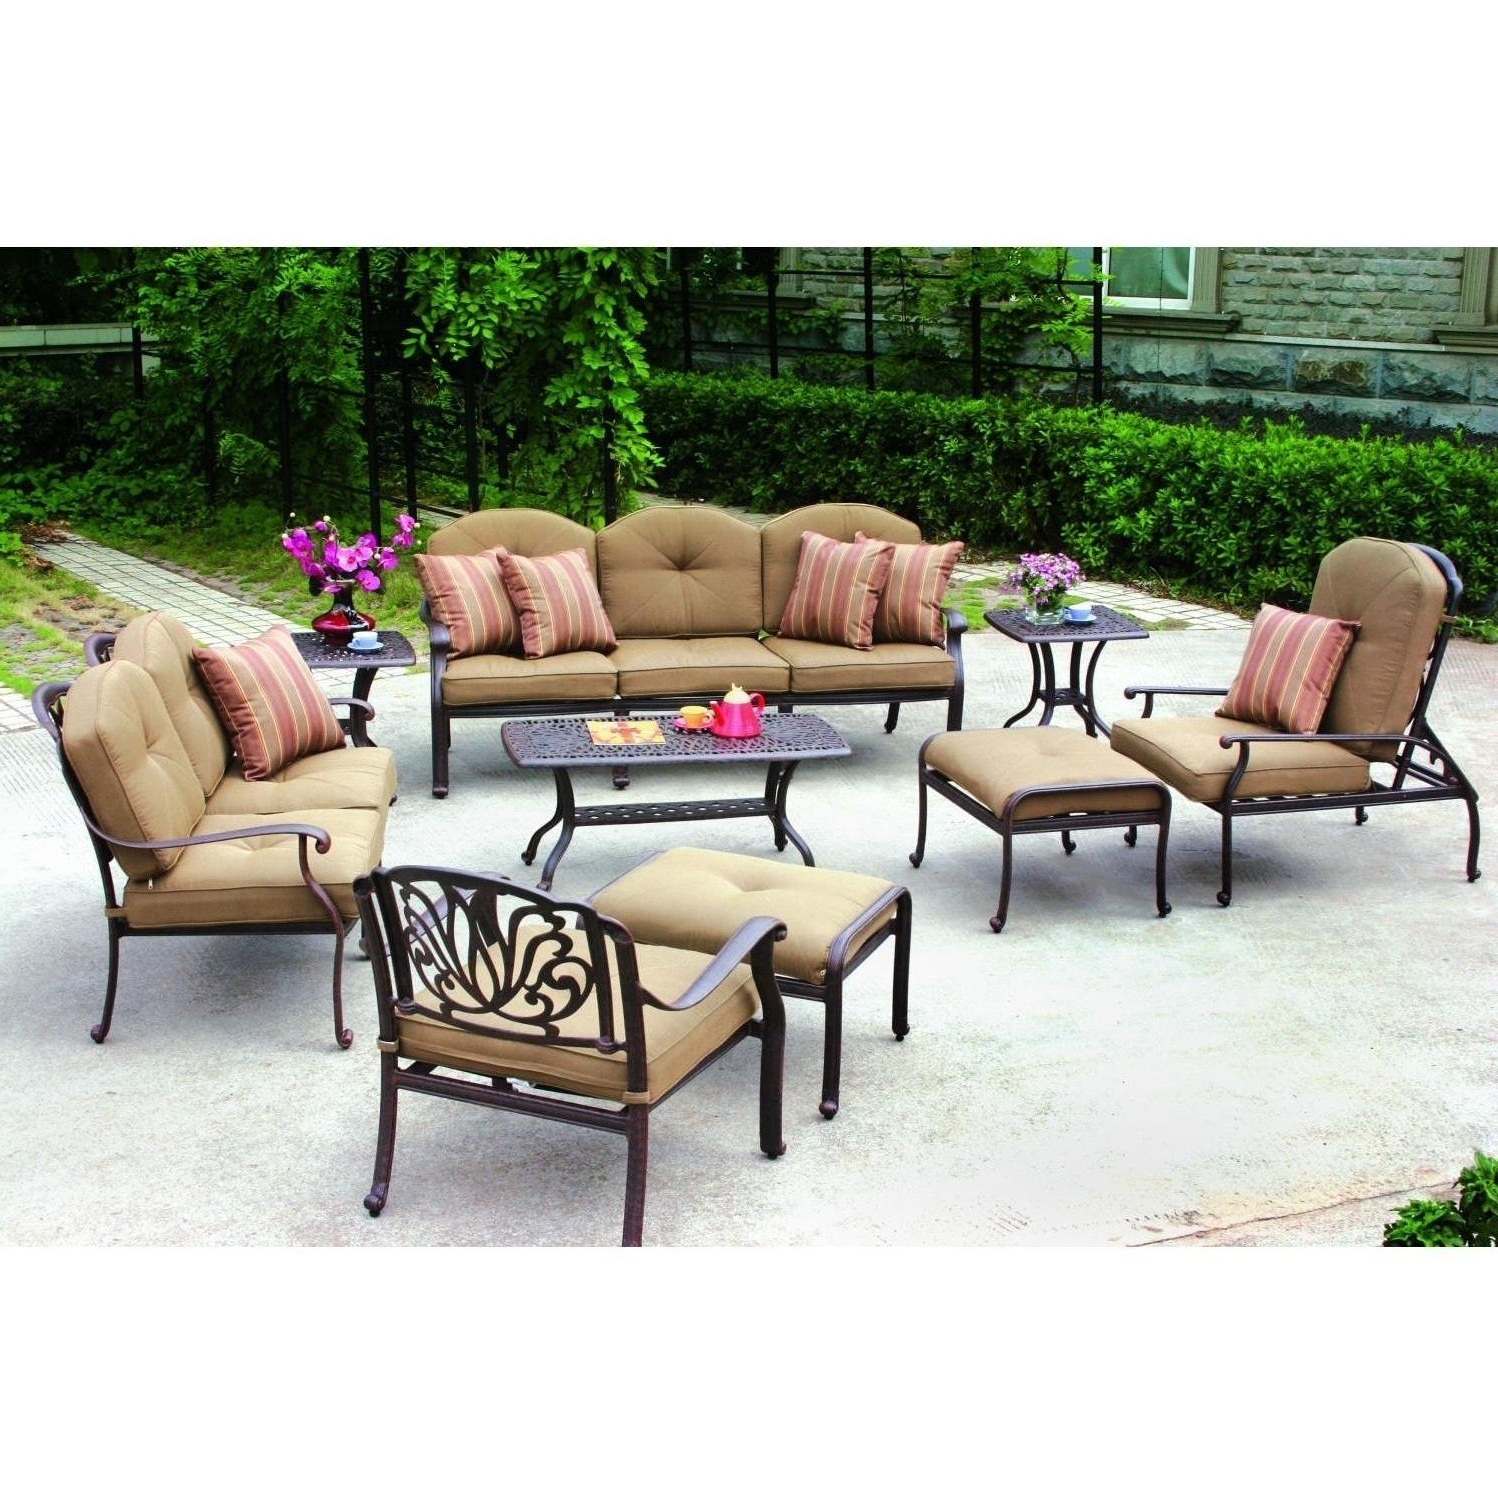 Current Outdoor : Best Deals On Patio Furniture Outdoor Wood Dining Table Throughout Small Patio Conversation Sets (View 3 of 20)